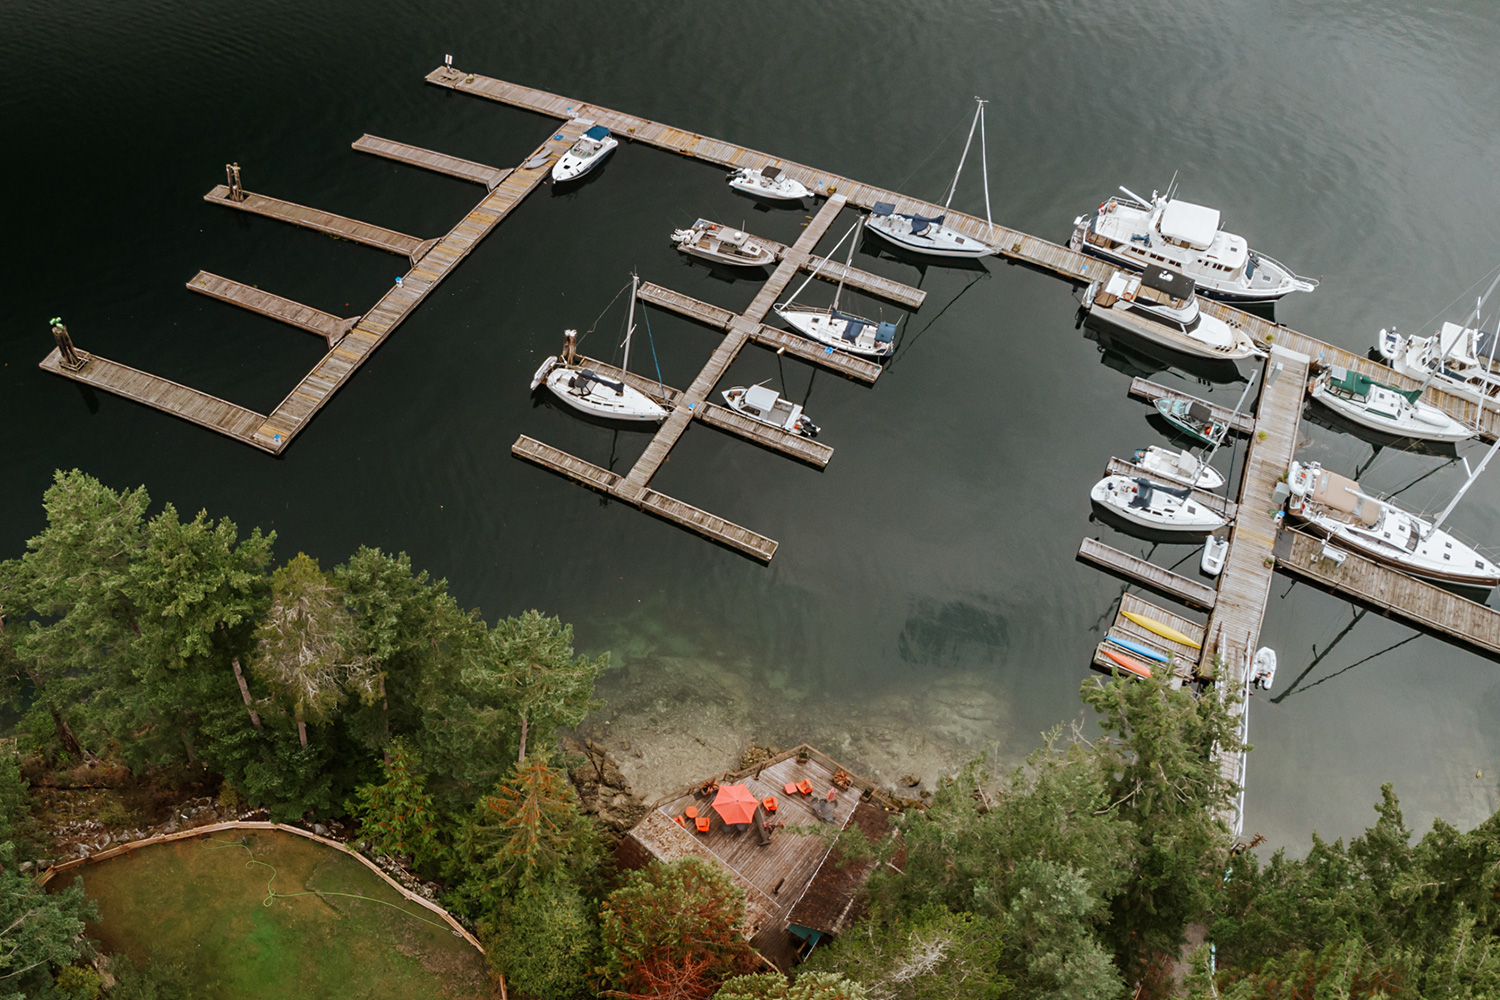 Aerial view of 15 boats on the 2300 lineal feet of boat moorage in Pender Harbour at John Henry's Marina and Resort.